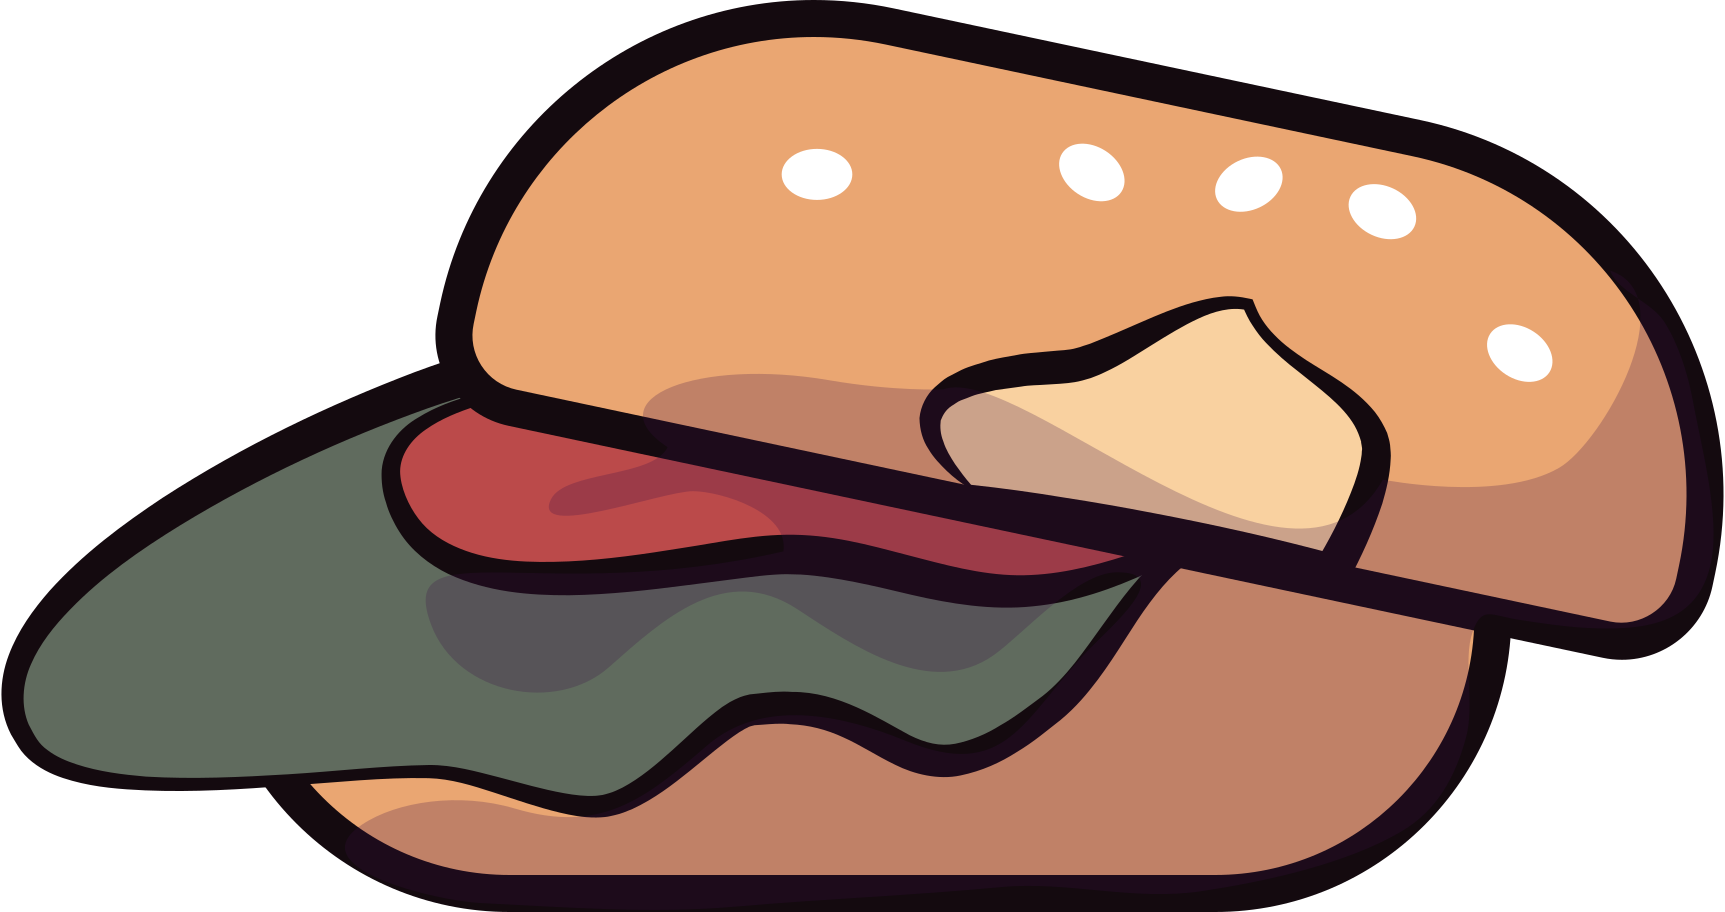 style hamburger images in PNG and SVG | Icons8 Illustrations